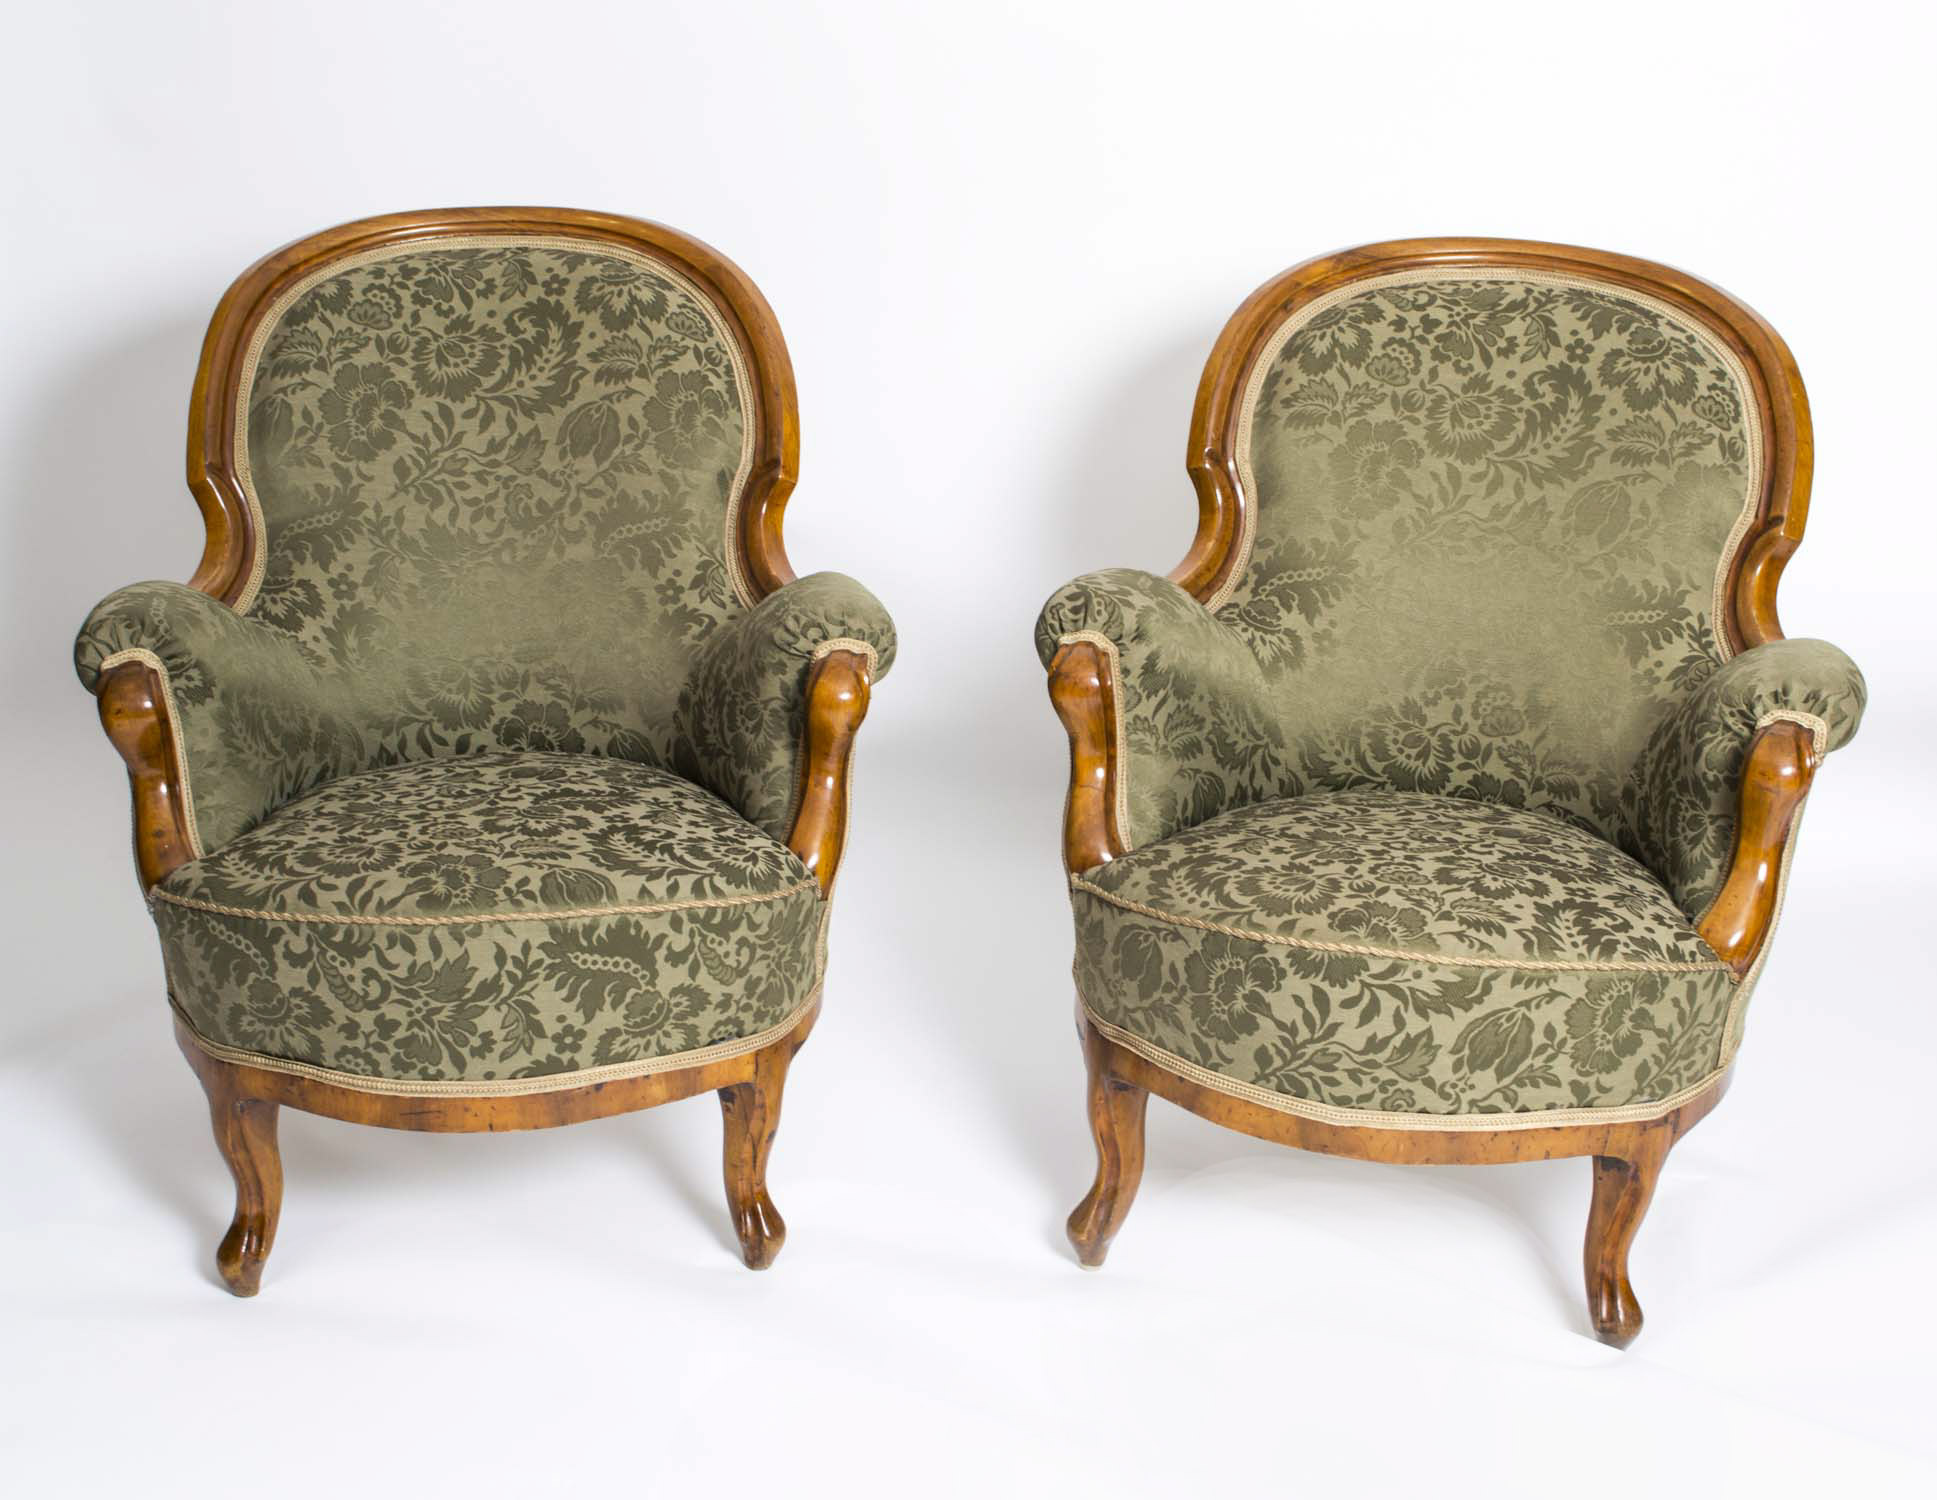 Antique victorian armchair - 06254 Antique Pair Victorian Mahogany Armchairs C 1880